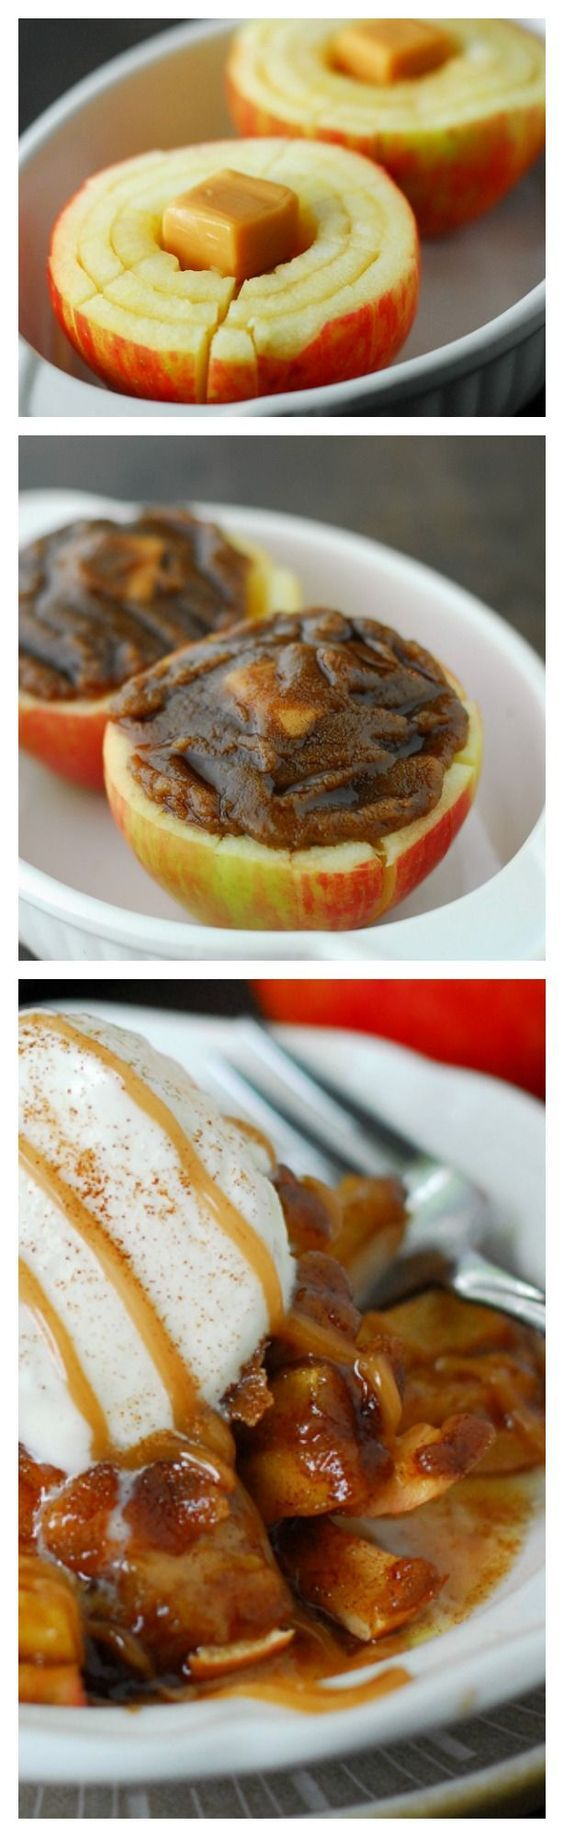 delightfully baked apples recipes dishmaps apples irresist apples ...